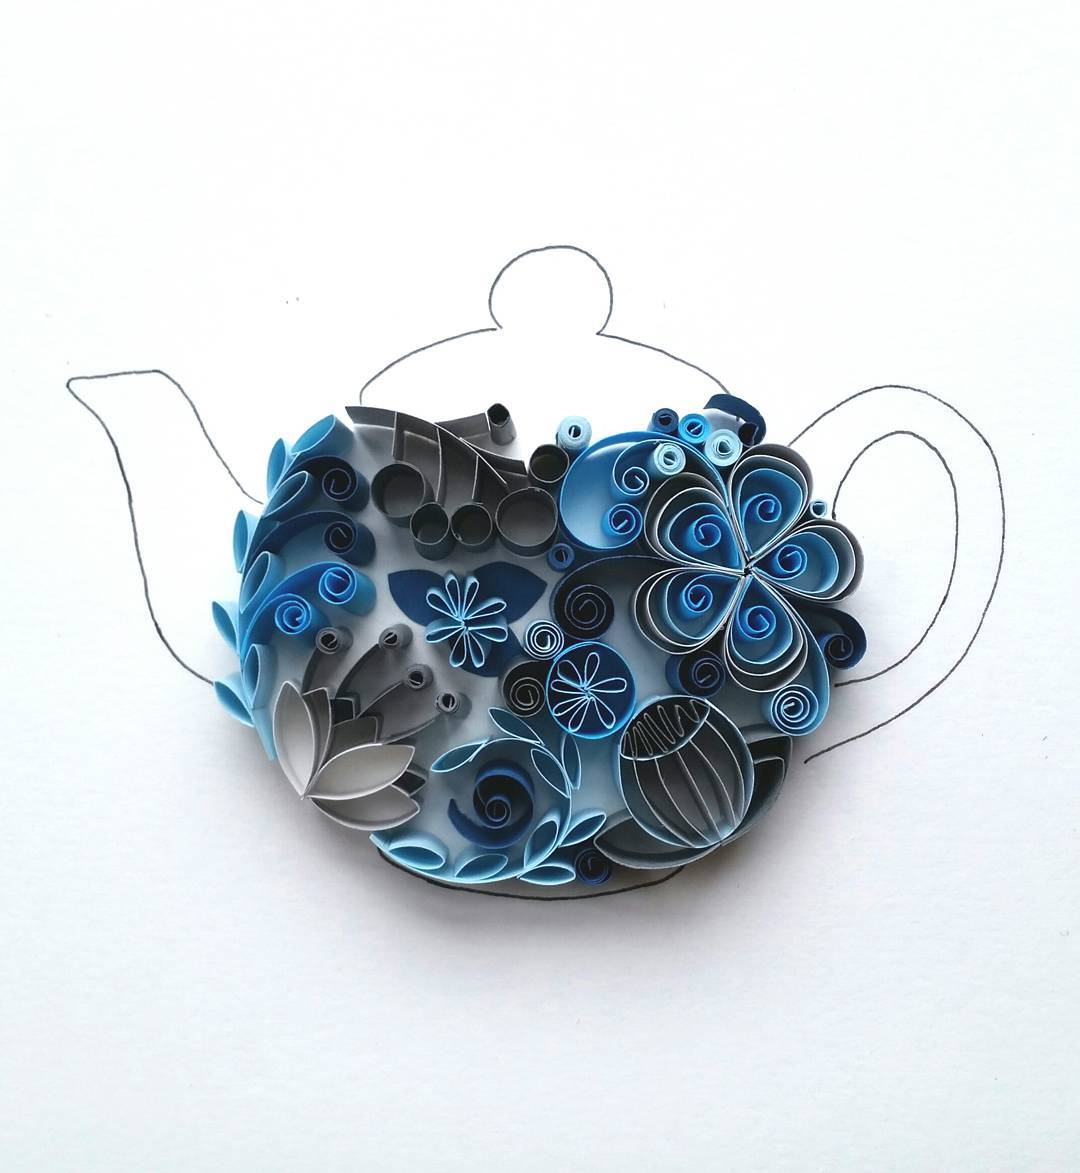 Whimsical Quilled Illustrations by Meloney Celliers - Teapot